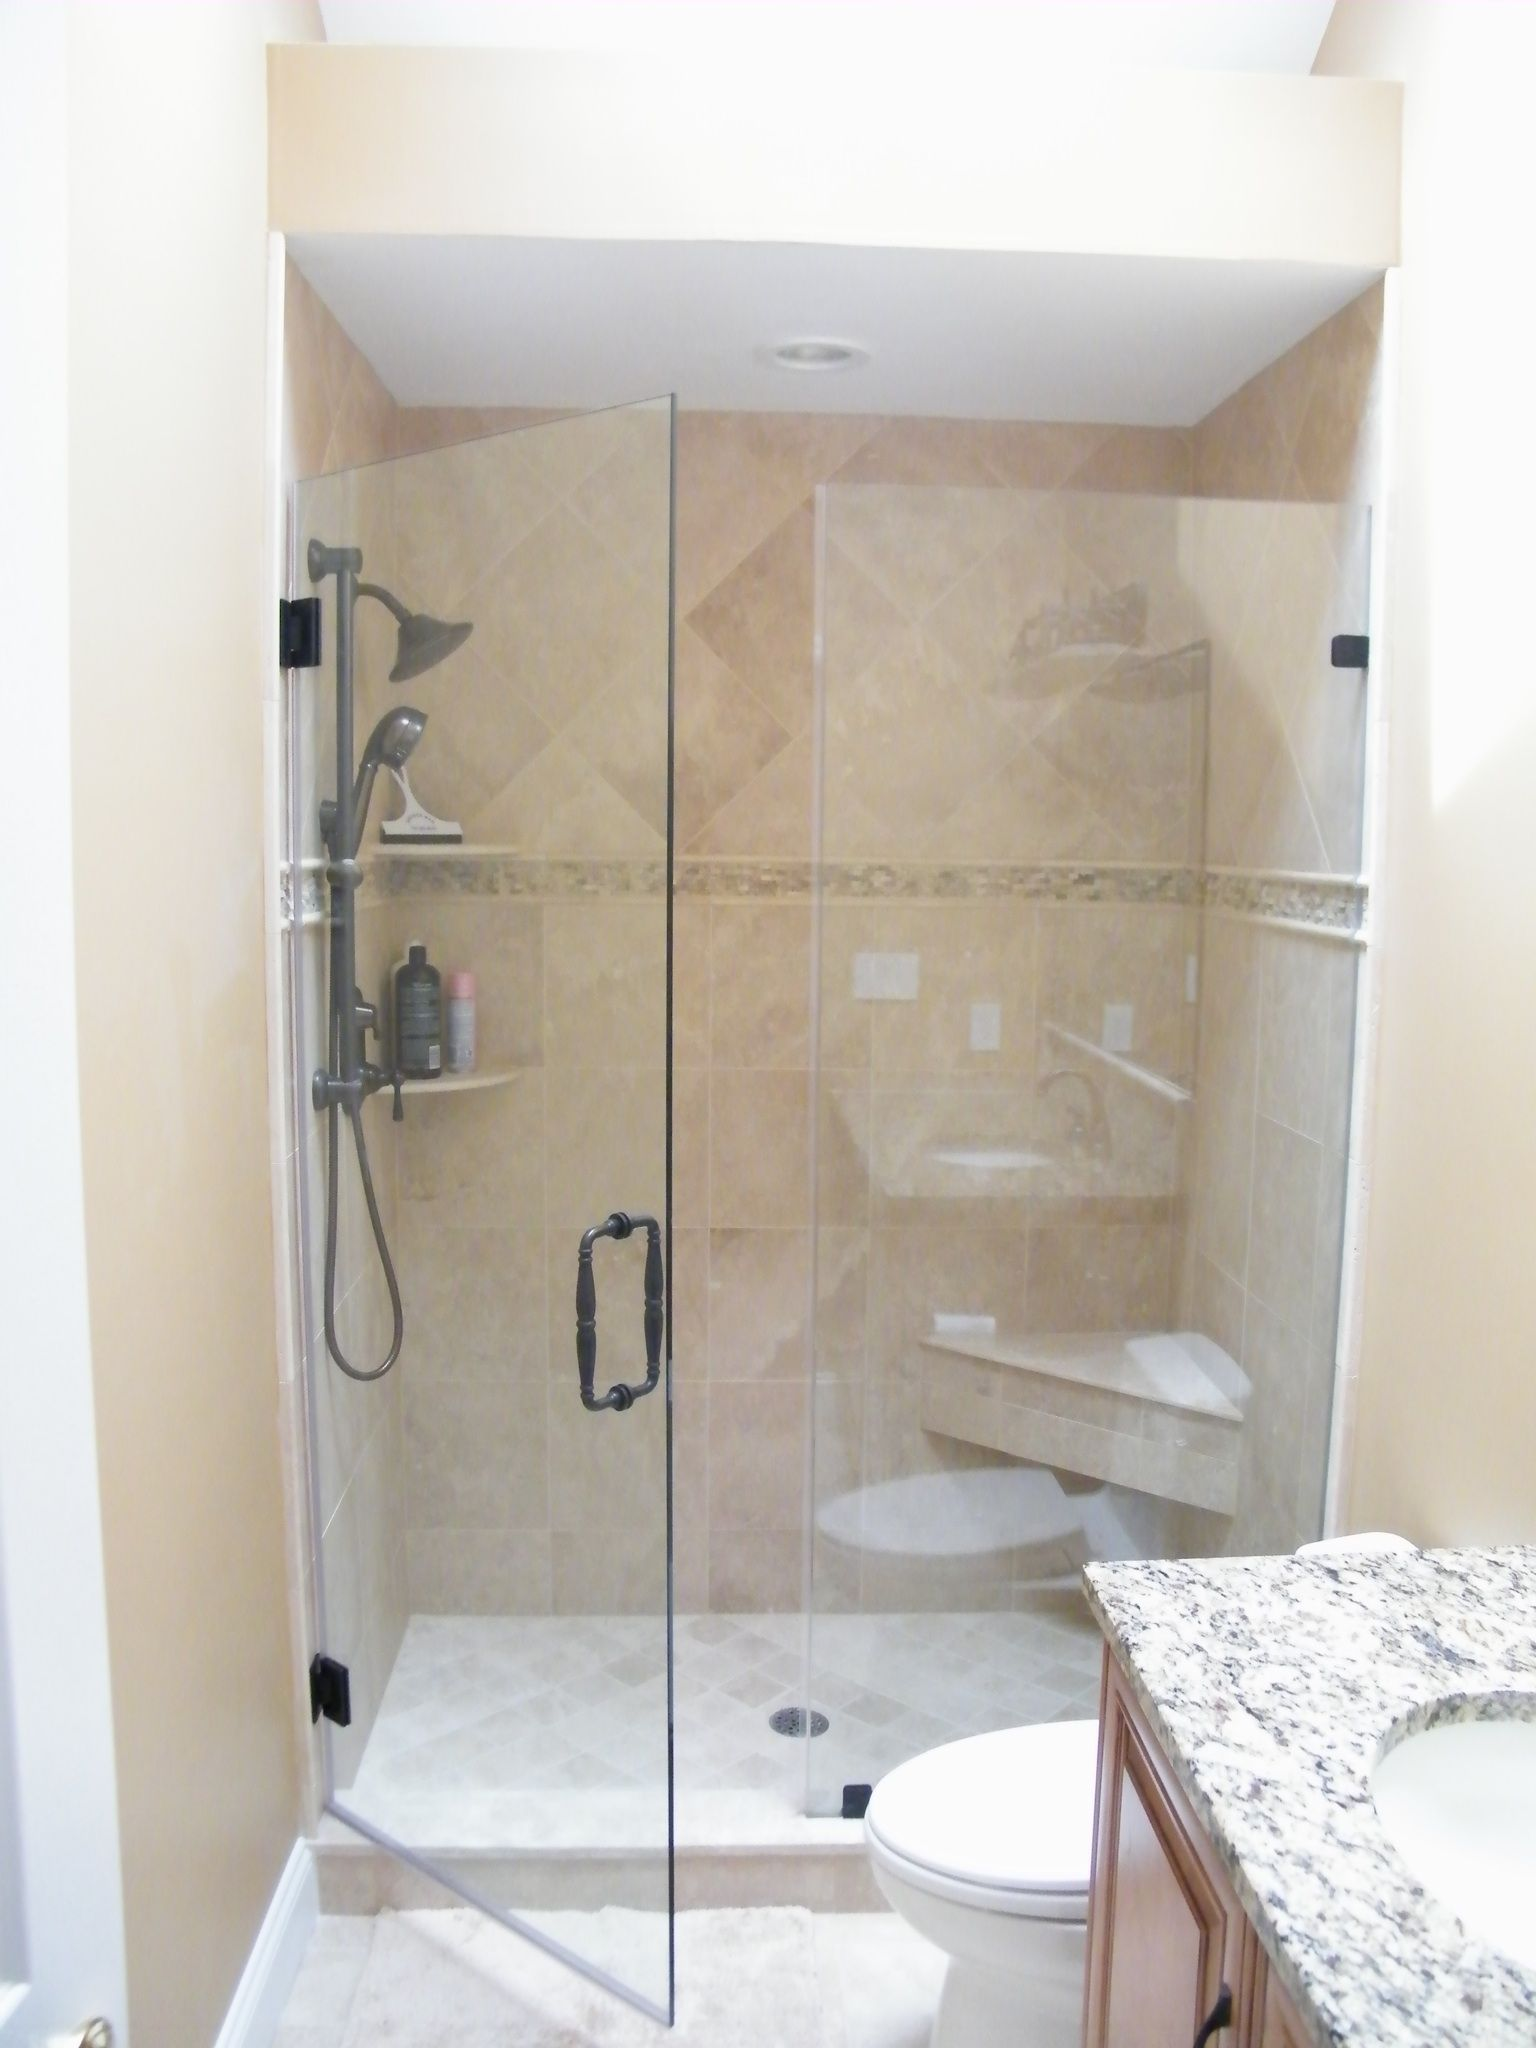 doctor hexagonal glass showers enclosure doors alternative door framed productfullimage shower gallery